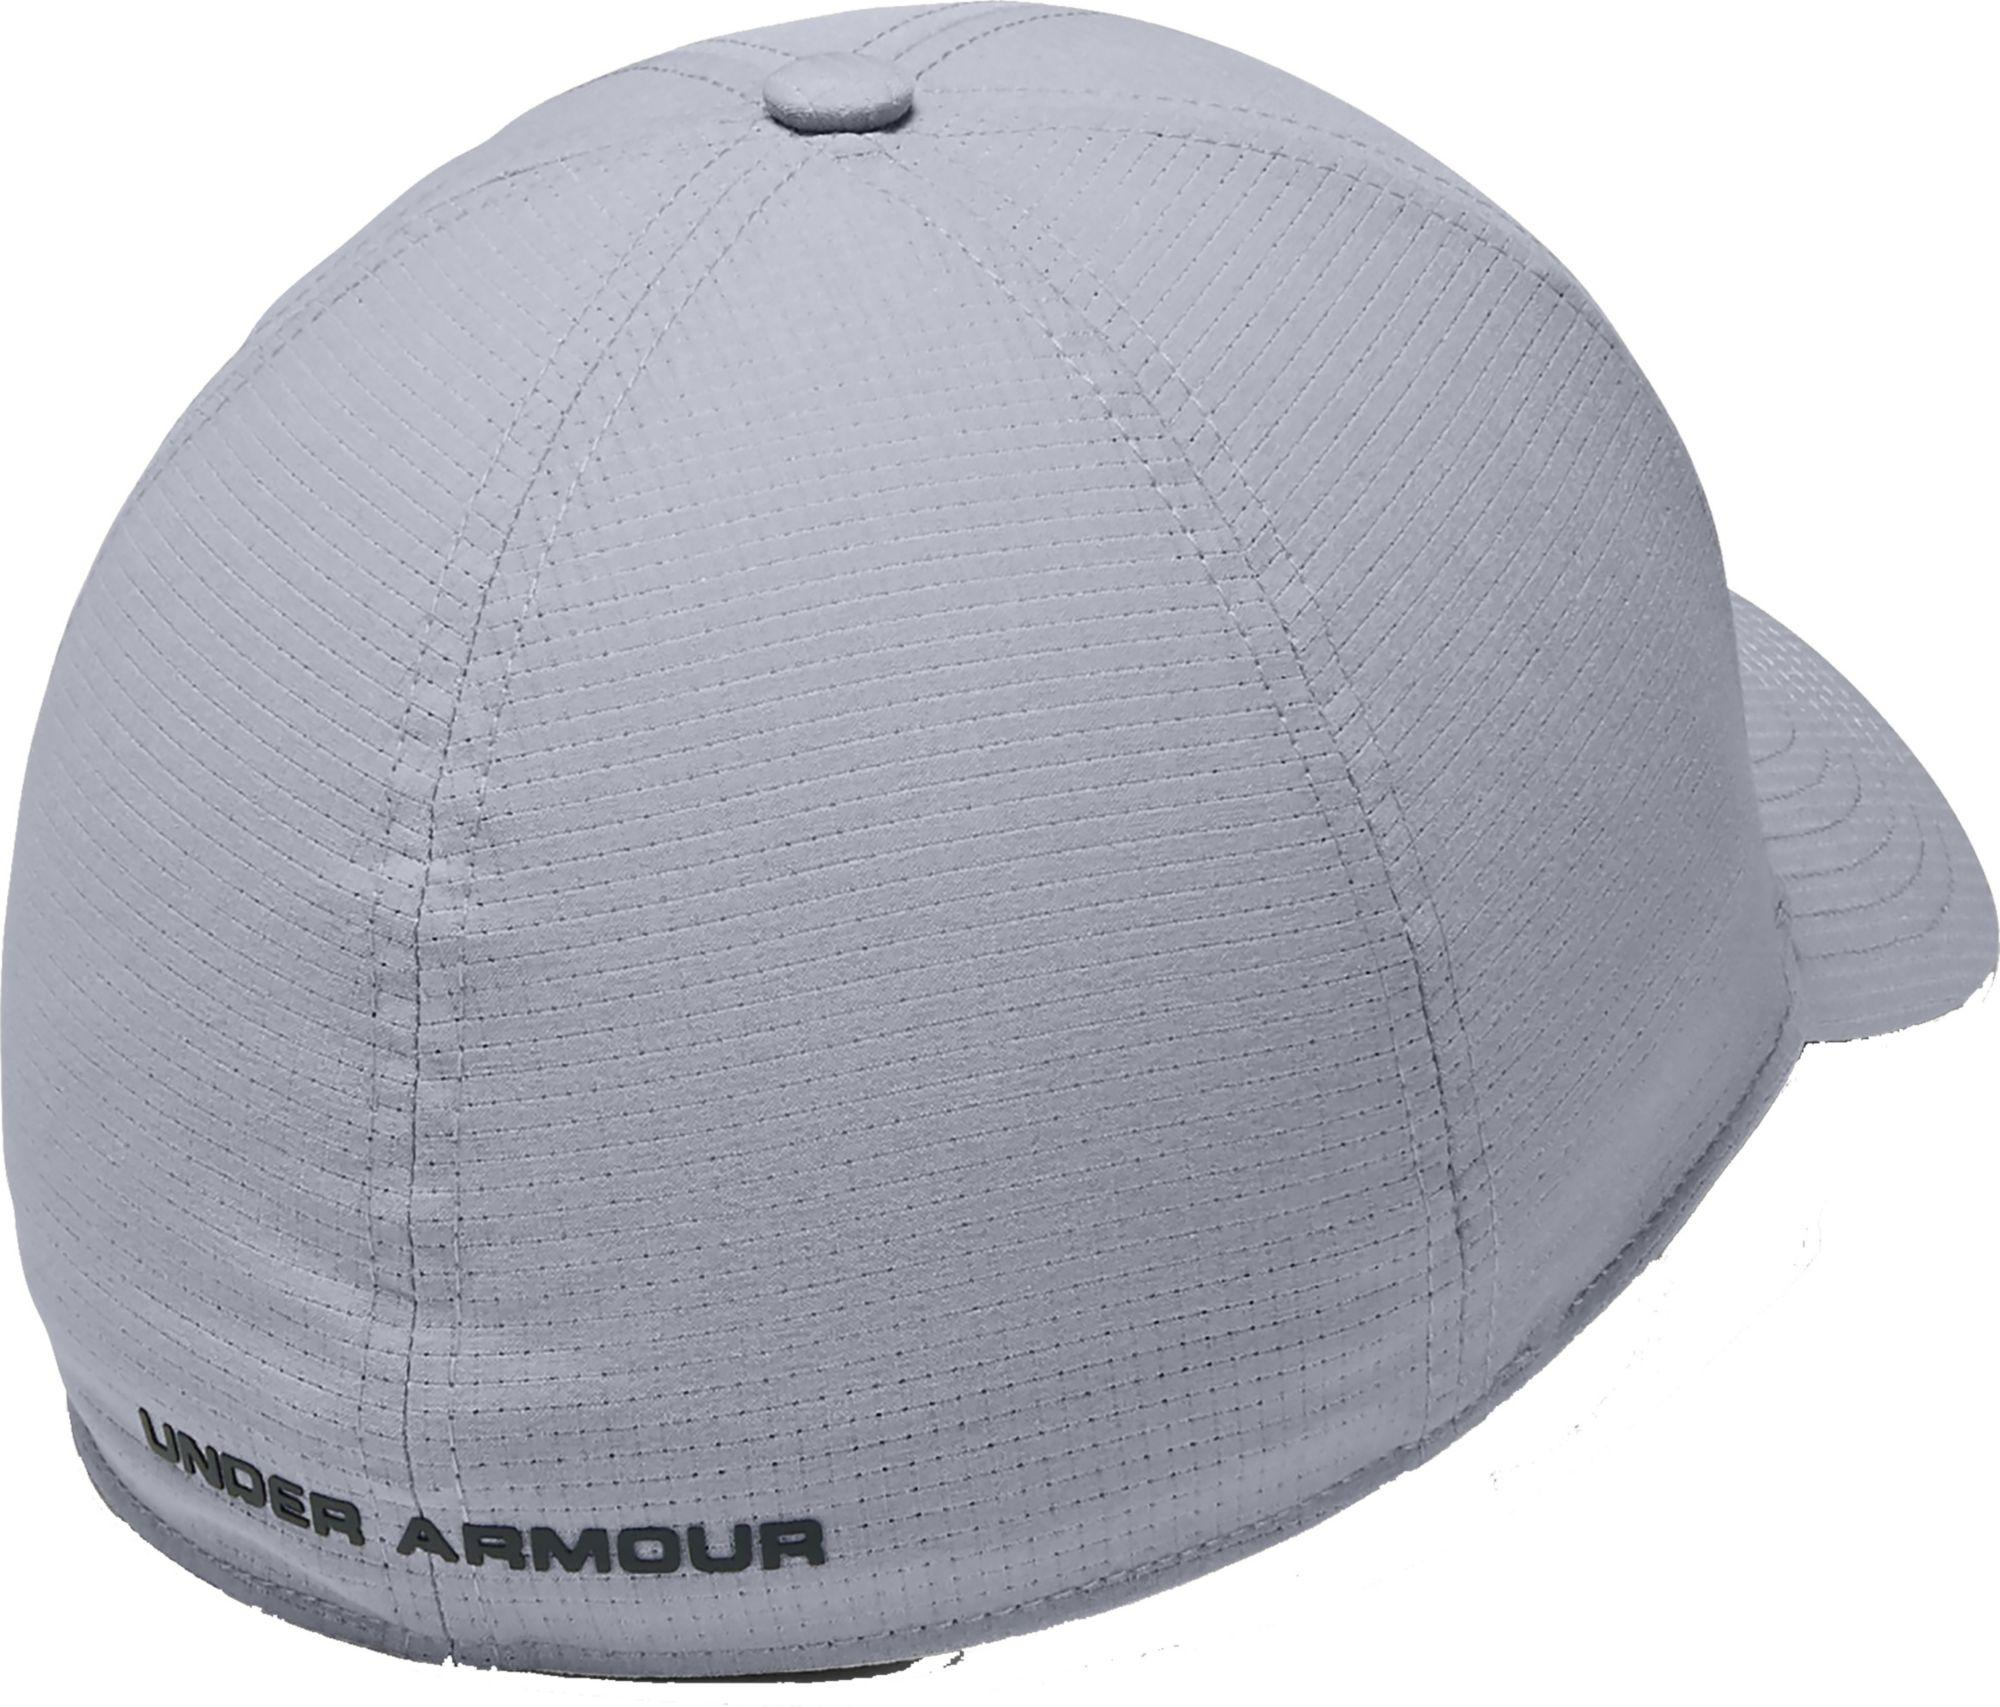 8c3b5ce9658 Under Armour - Gray Coolswitch Armourvent Fishing Hat for Men - Lyst. View  fullscreen